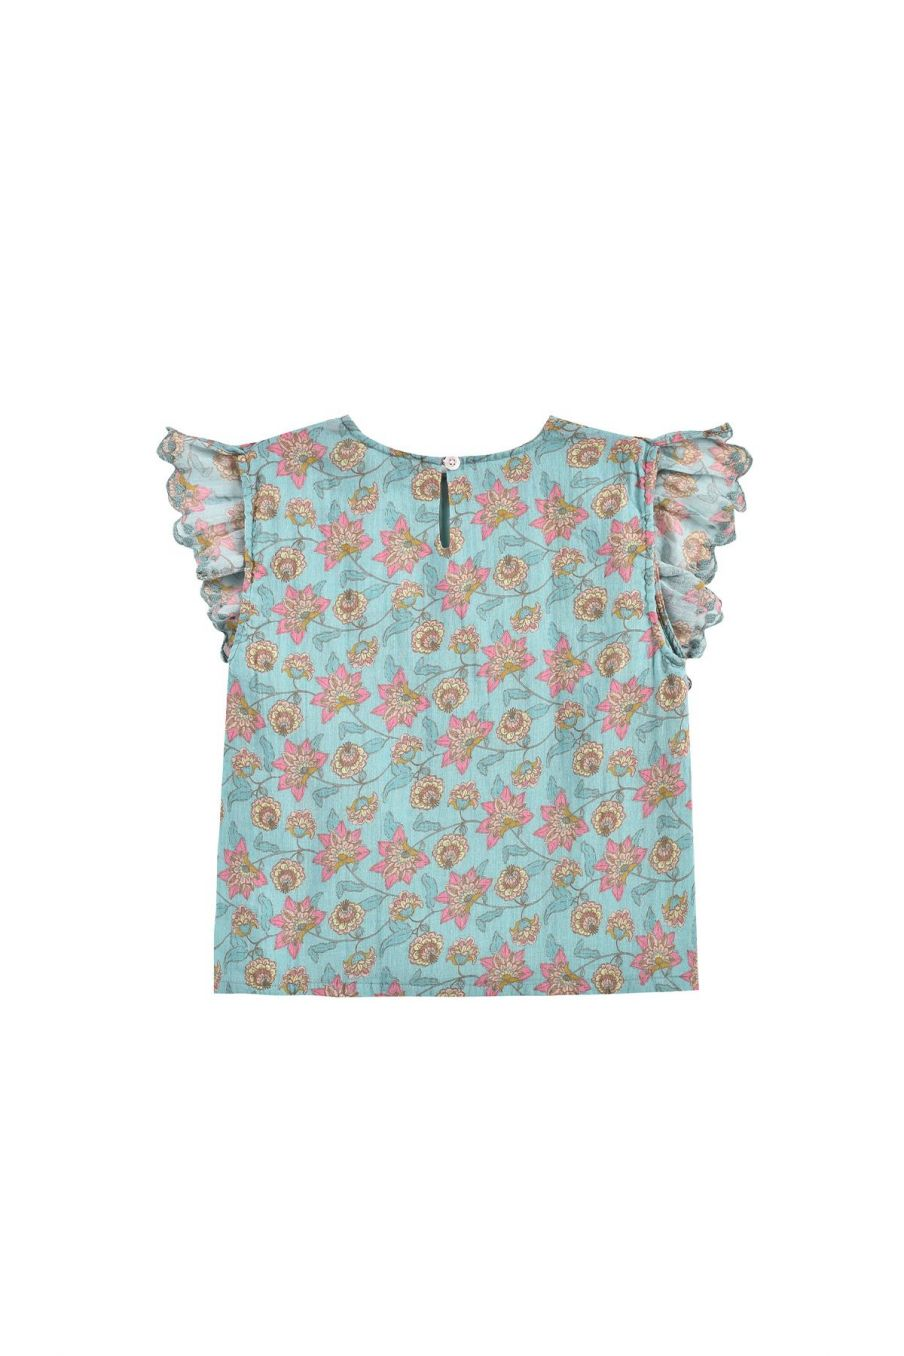 boheme chic vintage blouse fille hija turquoise flowers